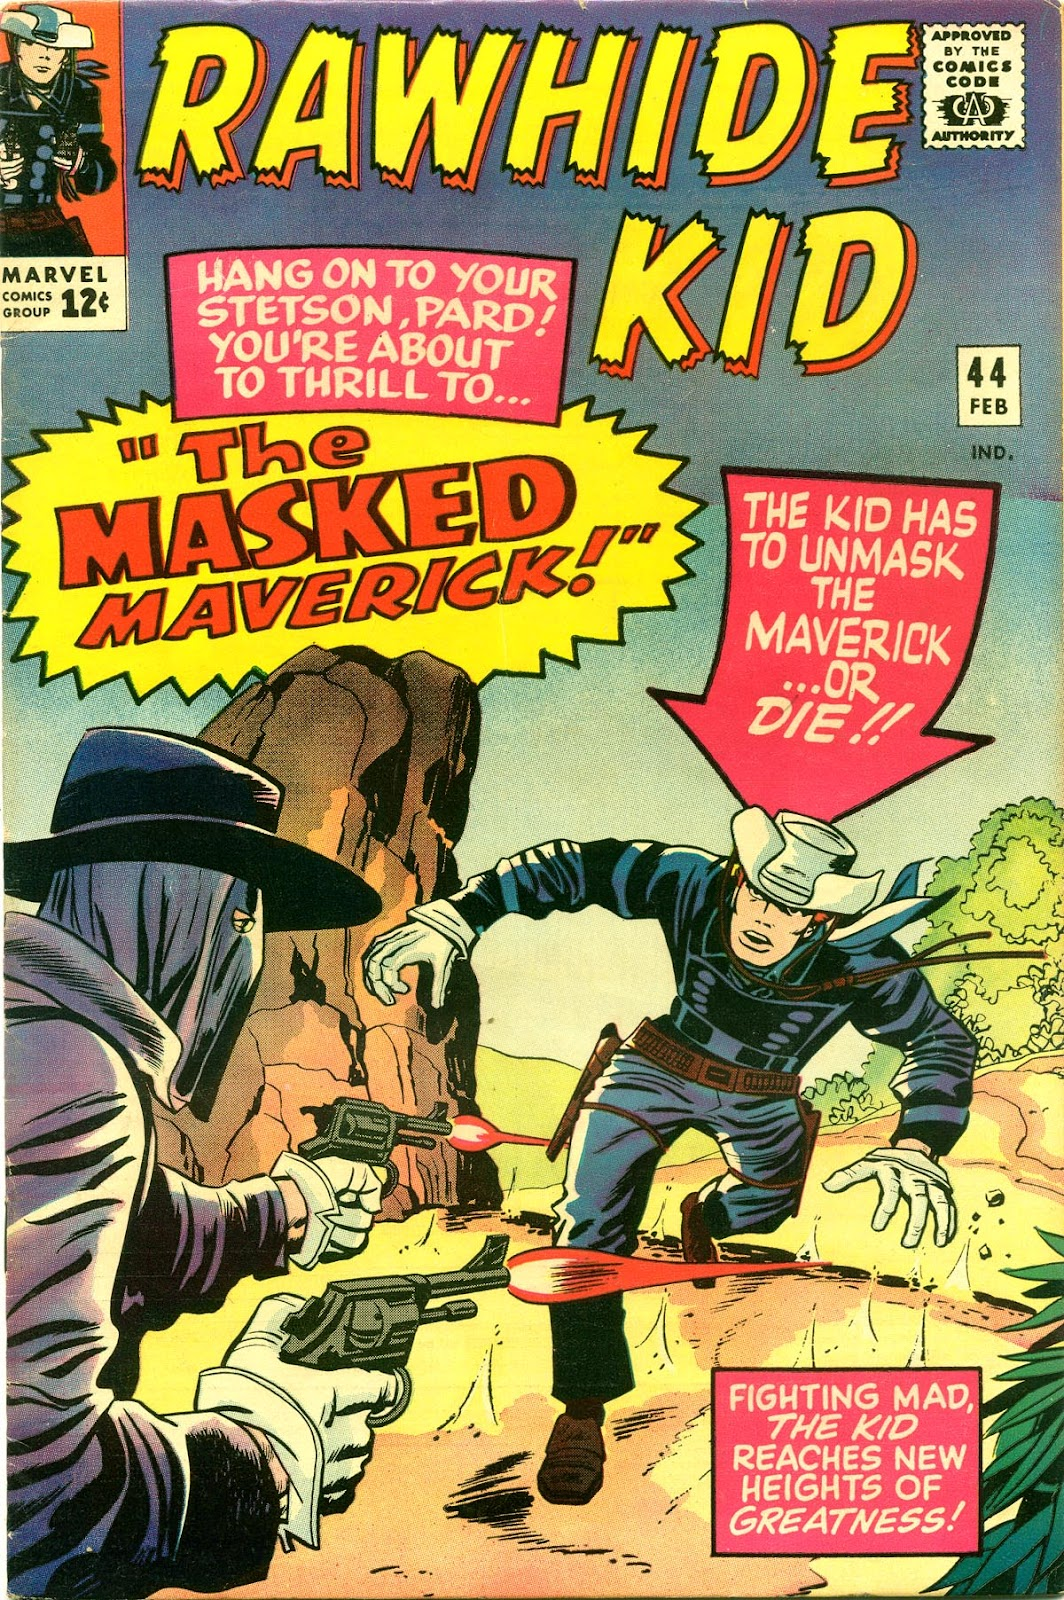 The Rawhide Kid (1955) issue 44 - Page 1